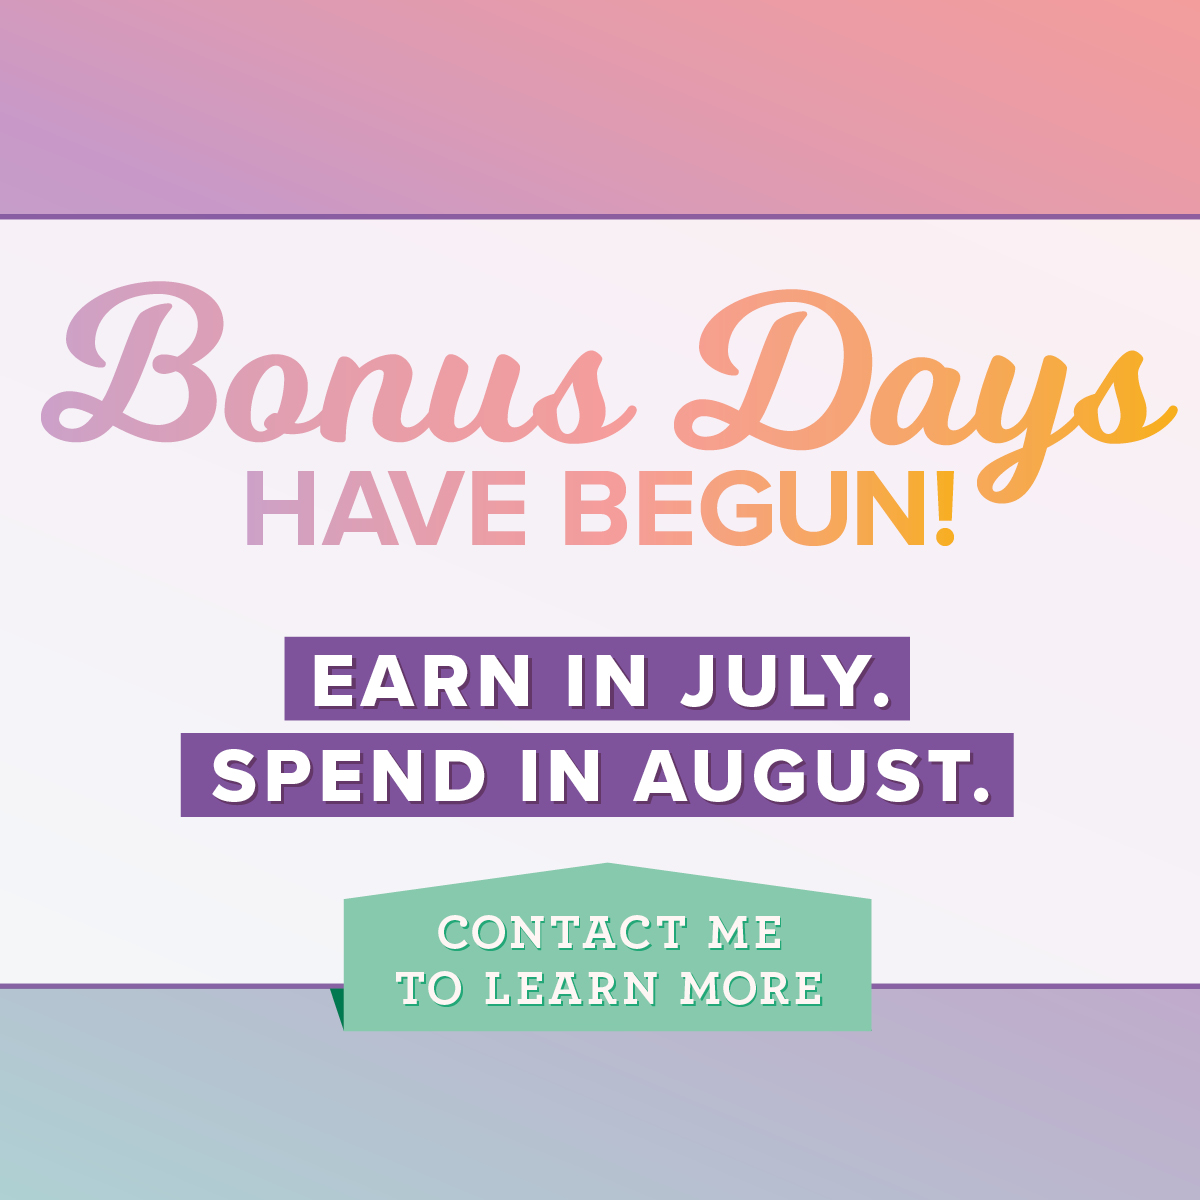 In July get $5 COUPONS!